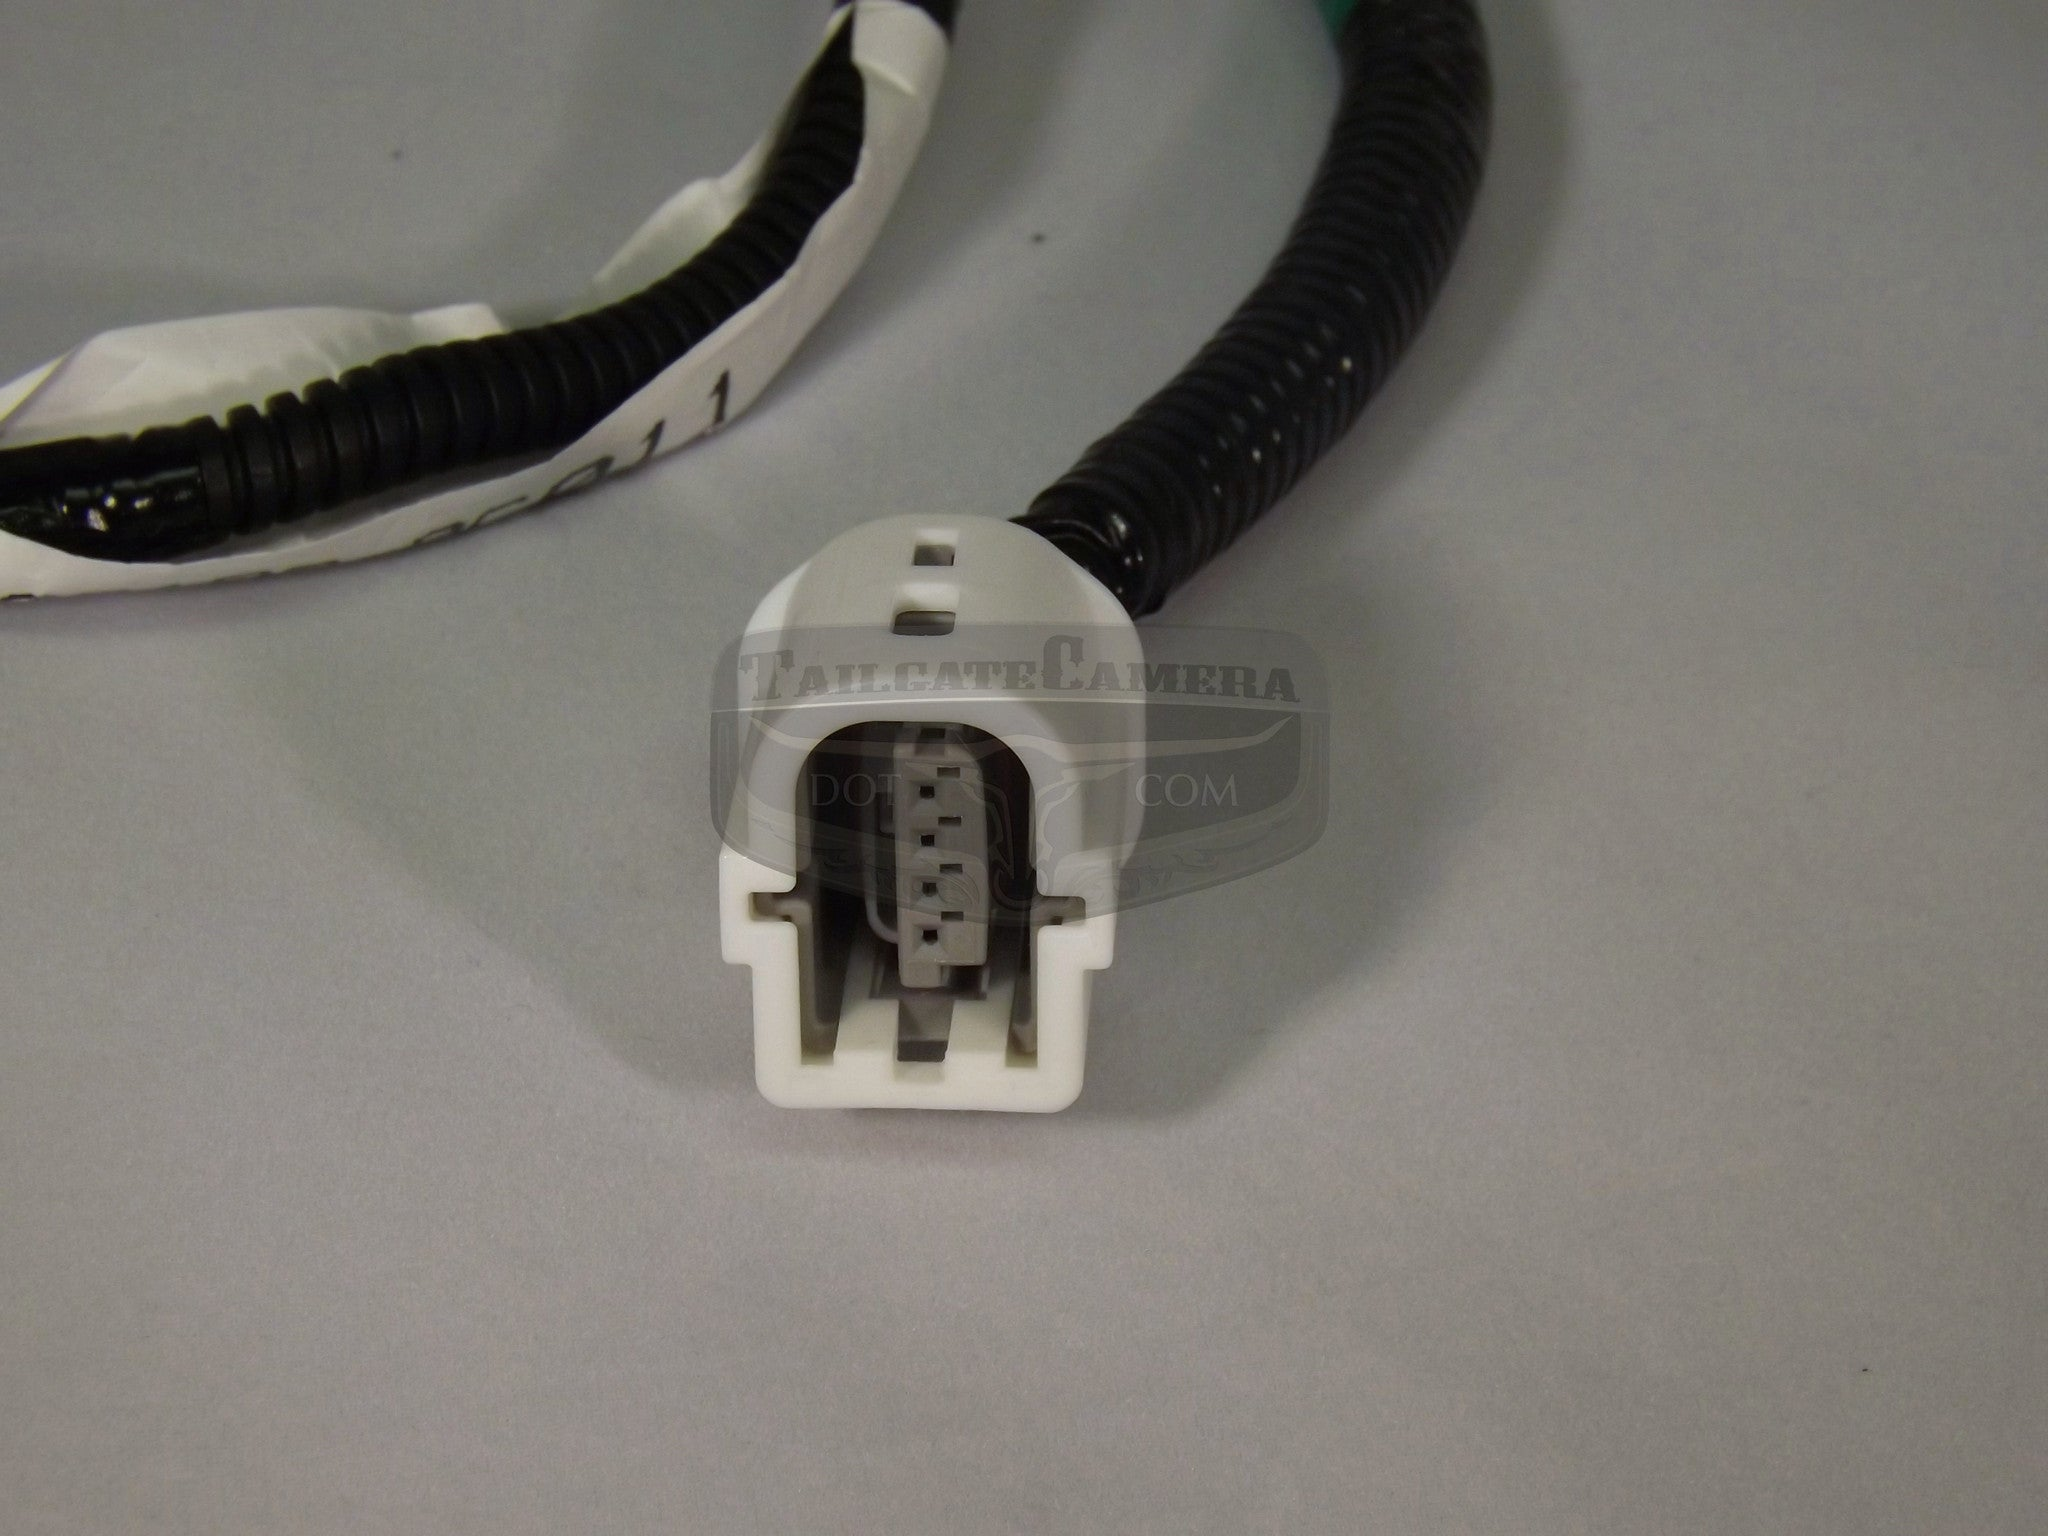 Surprising Pelco Kbd Wiring-diagram Kit Contemporary - Best Image ...